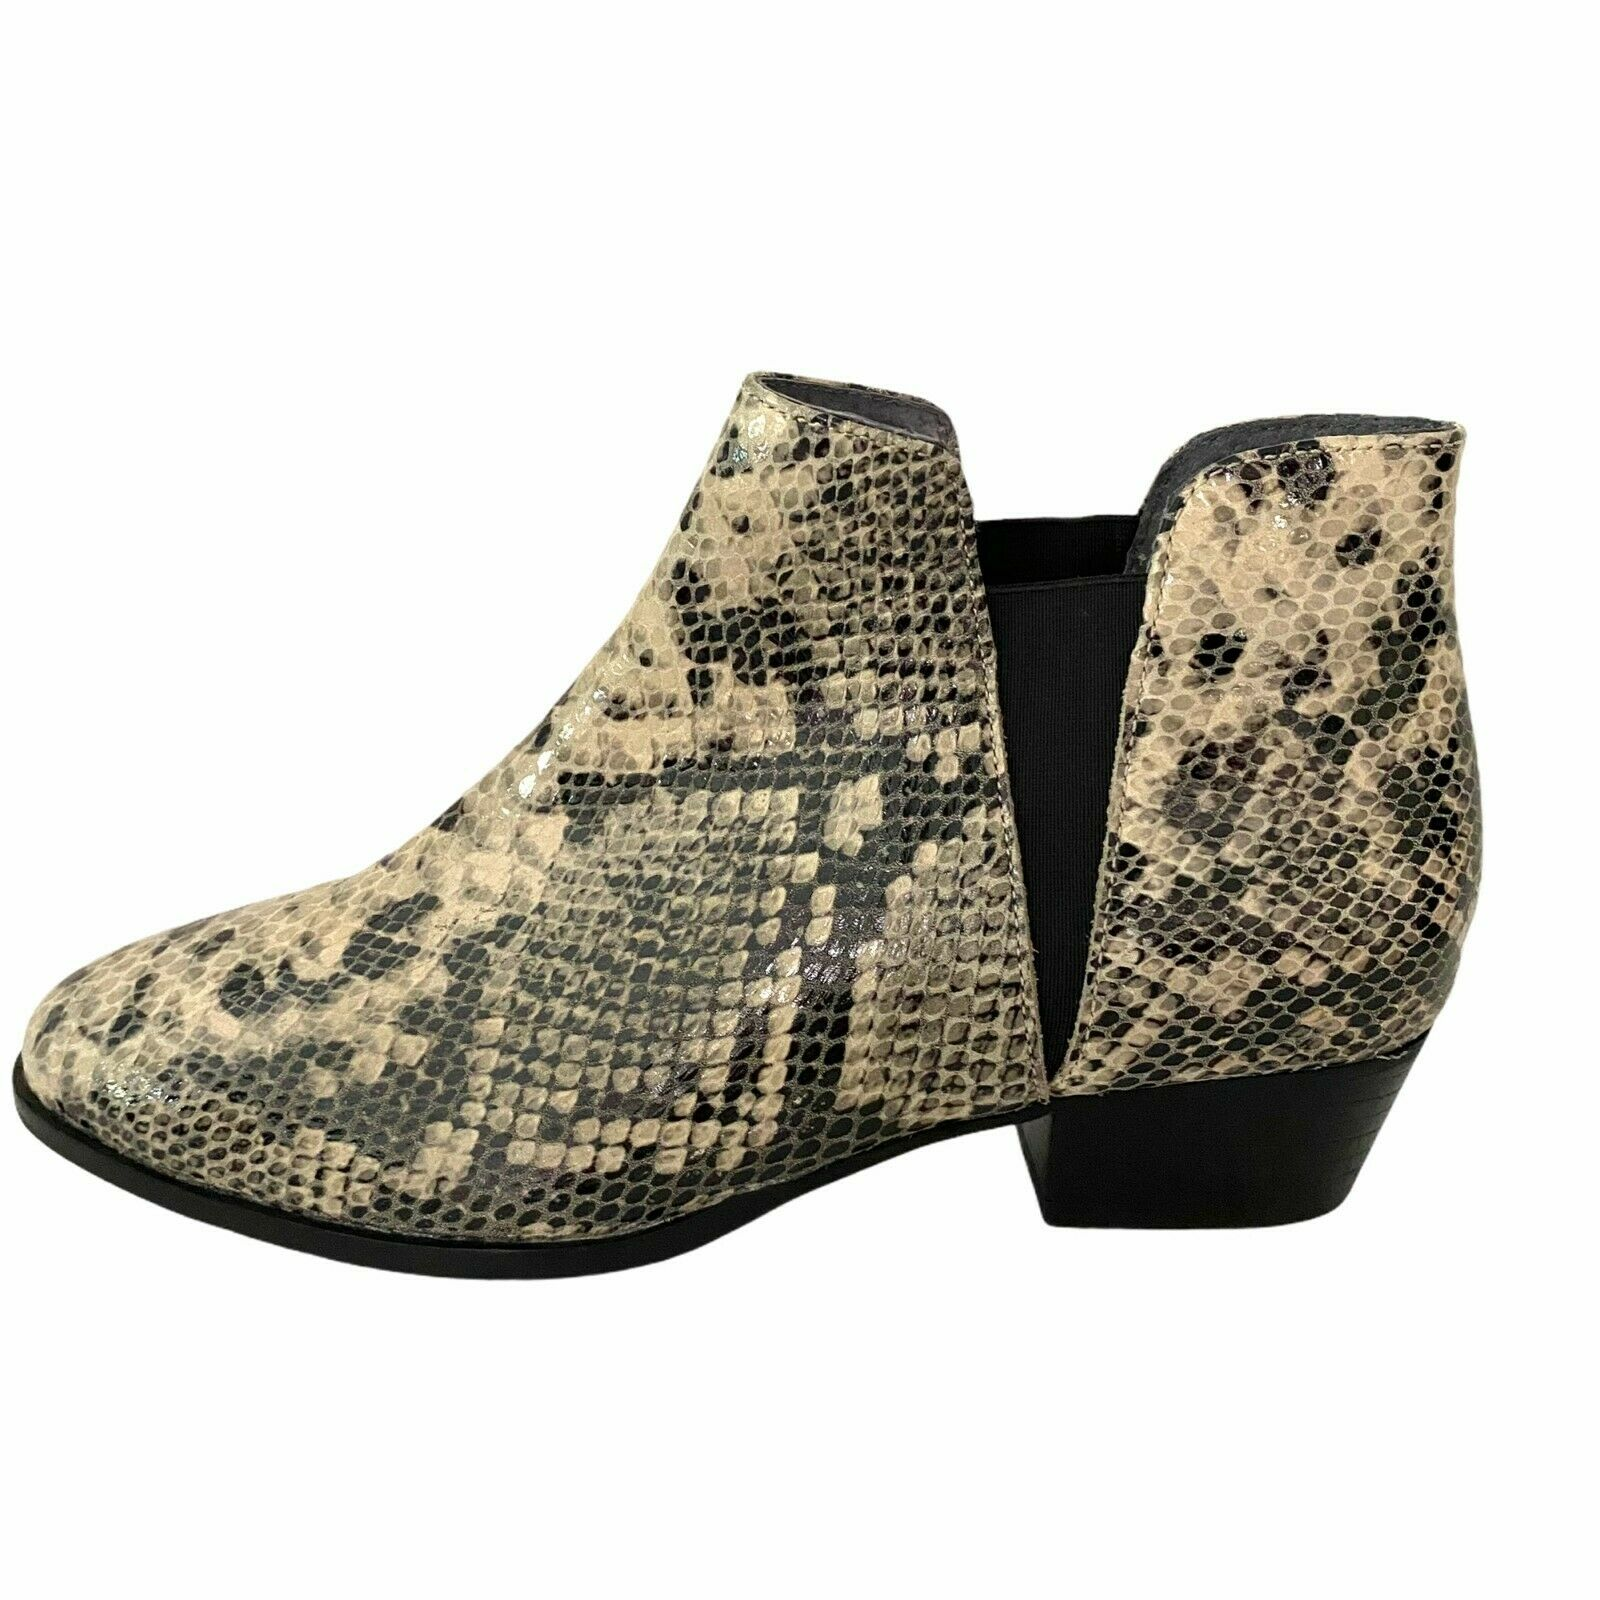 Seychelles Women's Waiting For You Snake Python Embossed Leather Booties Size 8